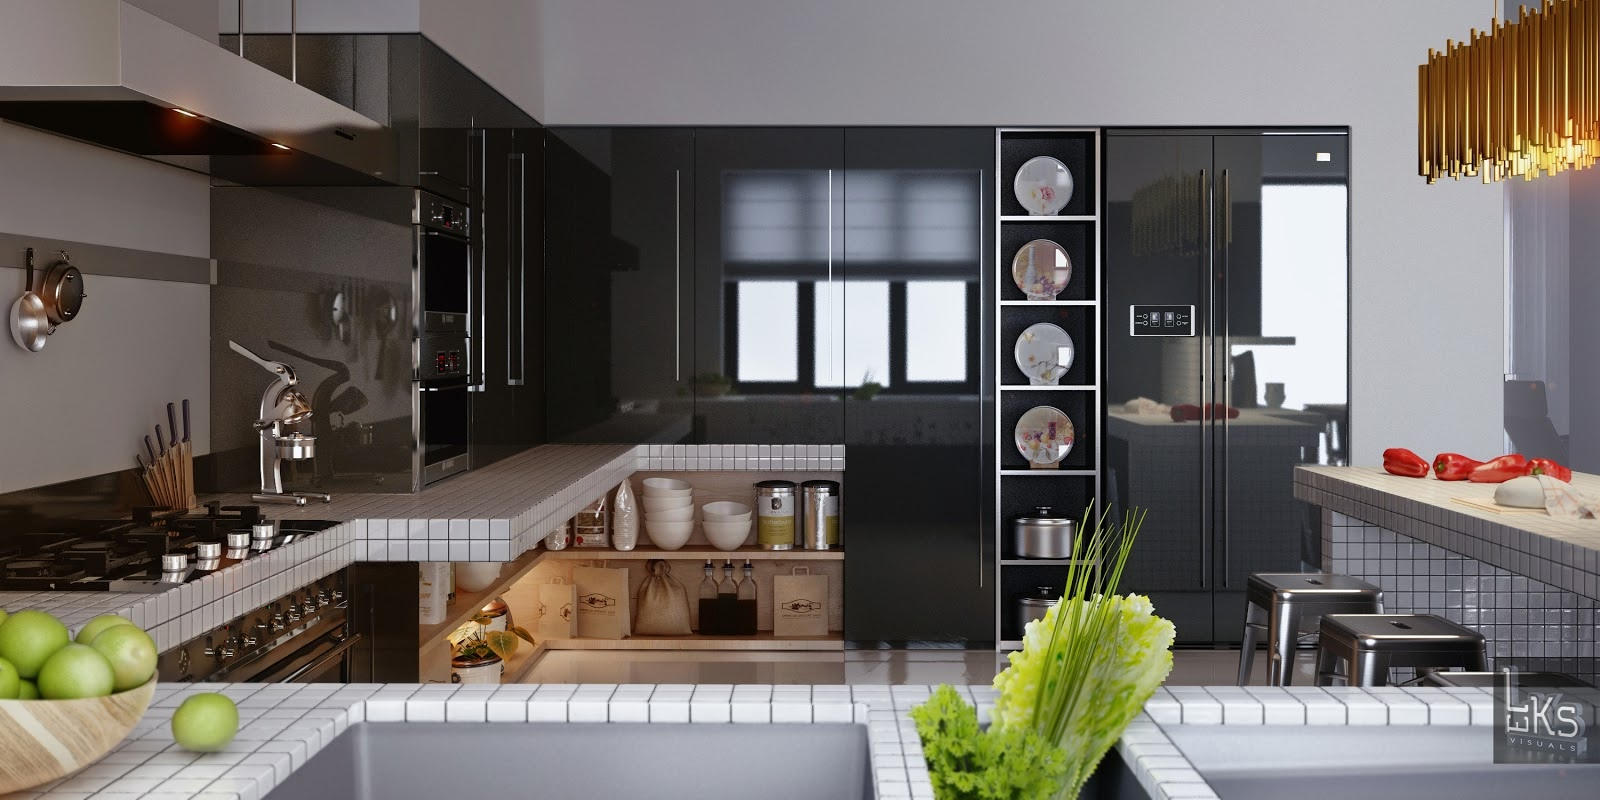 Leks Architects Kiev Apartment Monochrome Lacquered Kitchen With - Kitchen architects